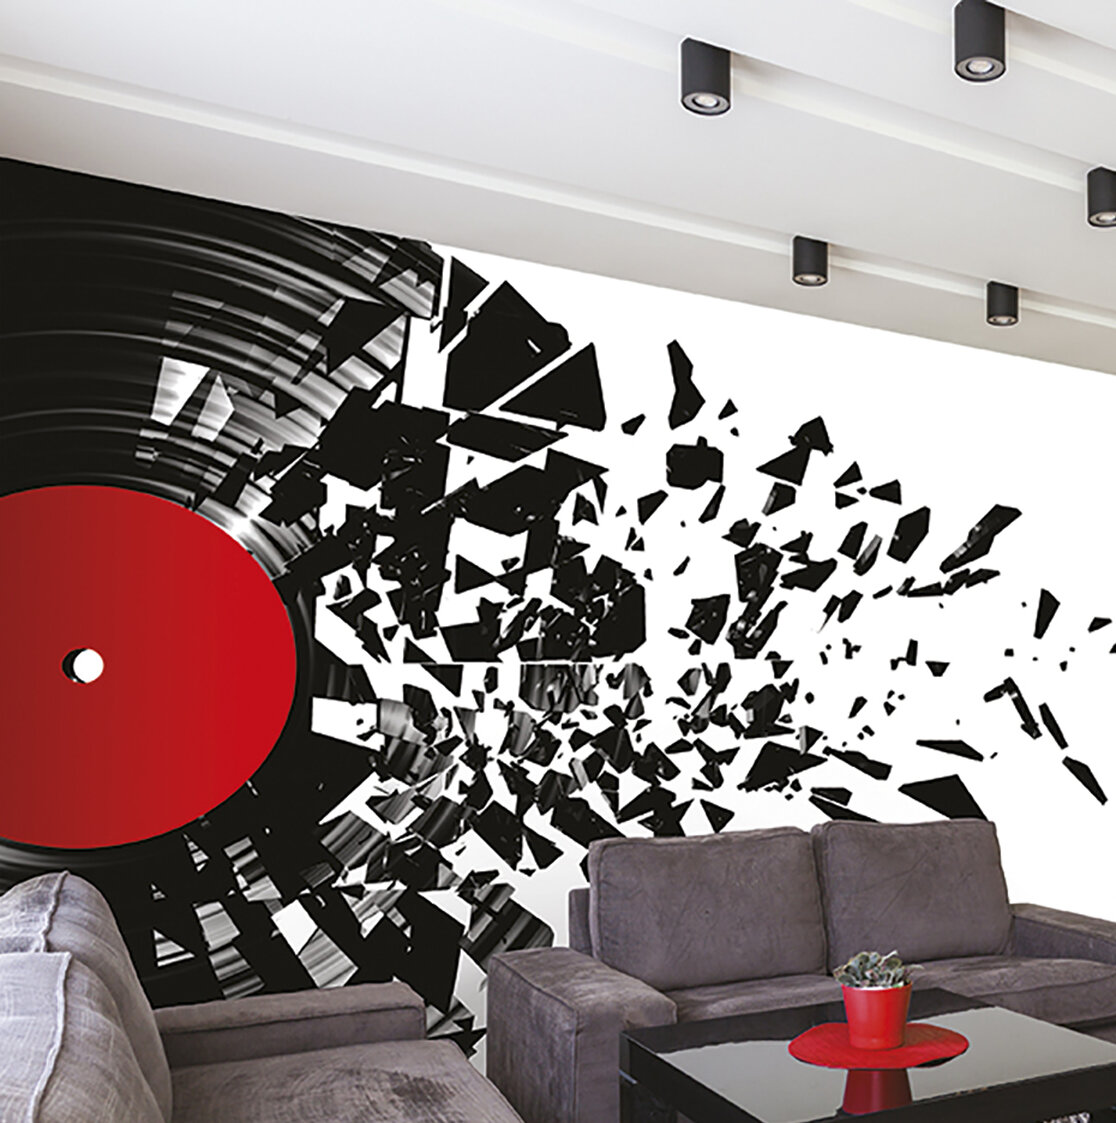 East Urban Home Smashed Vinyl 9 8 L X 94 W 6 Panel Wall Mural